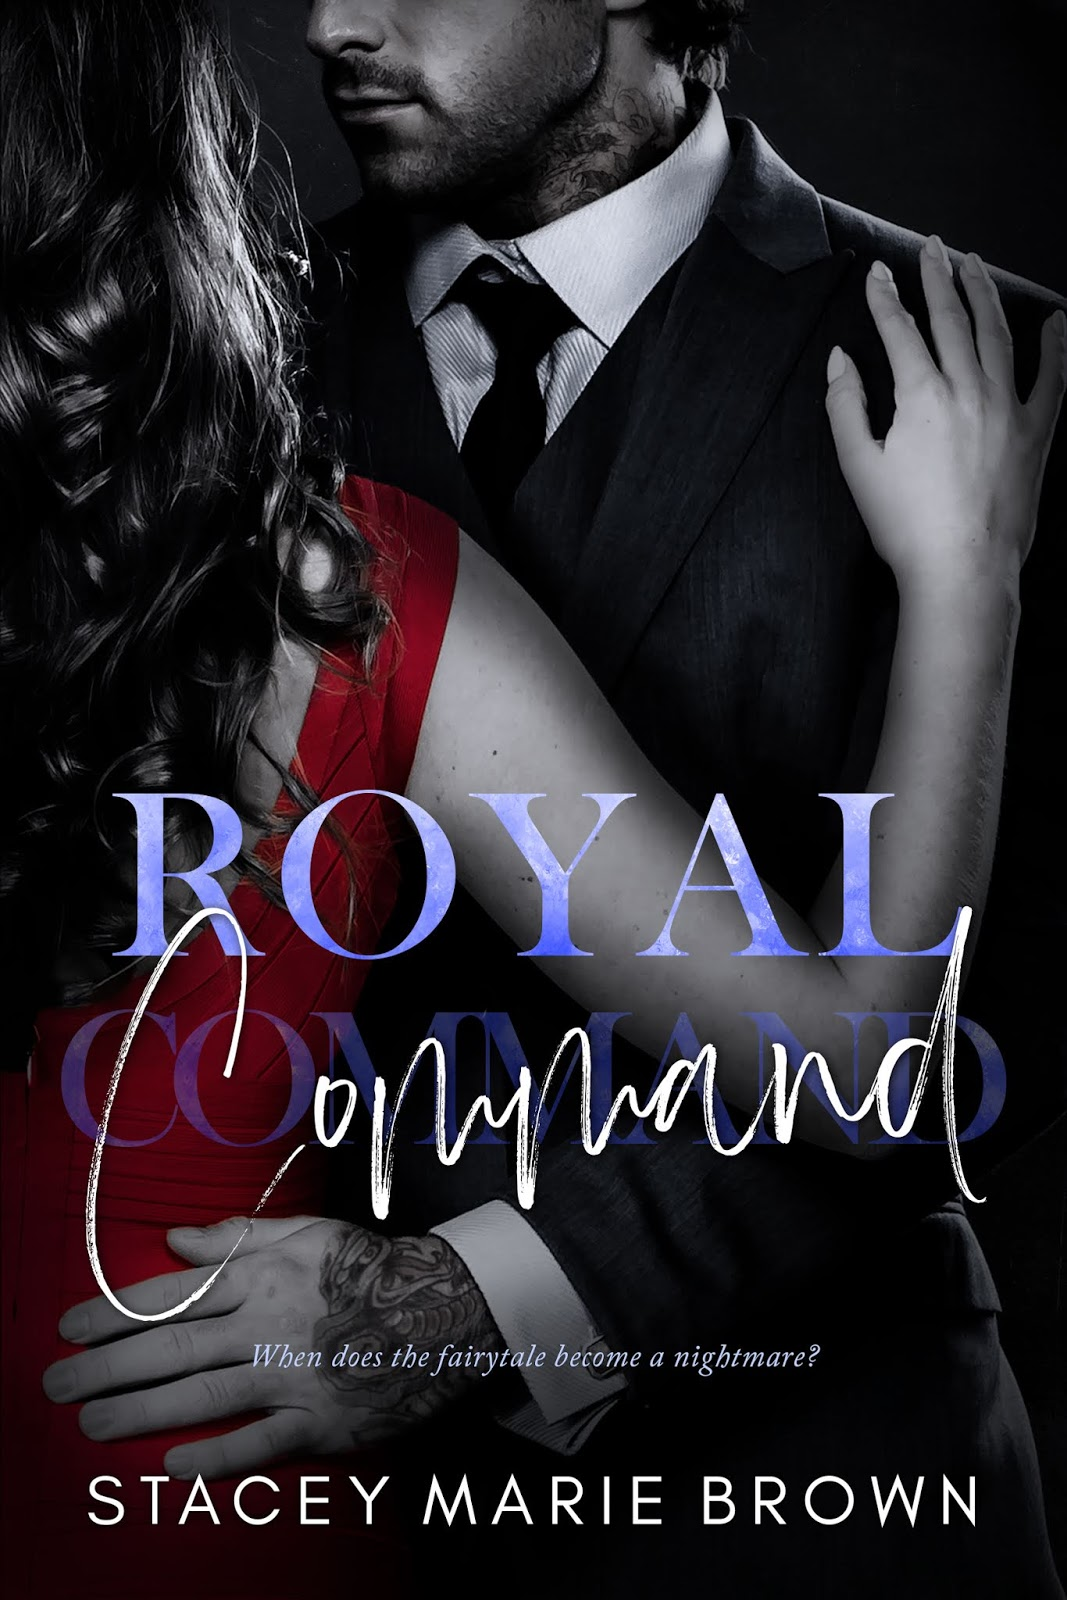 Royal Command by Stacey Marie Brown